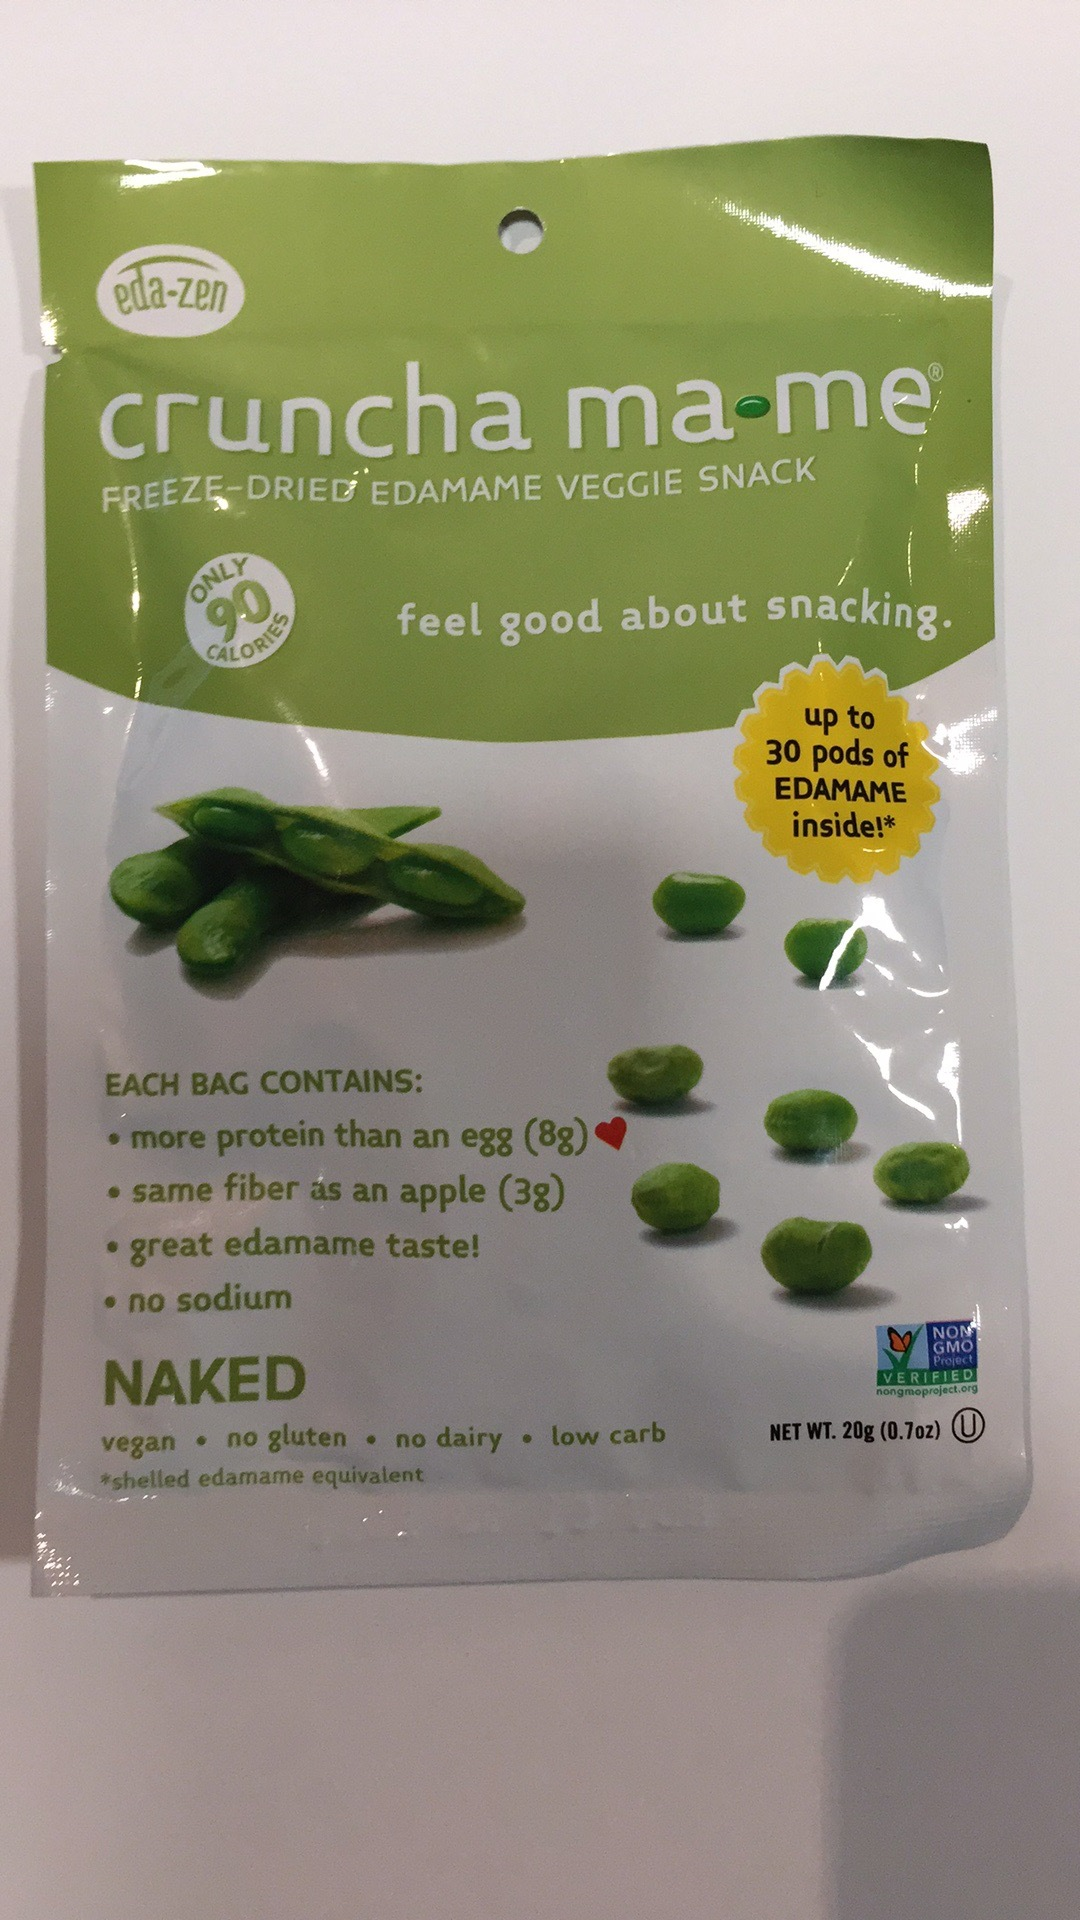 Freeze-dried Edamame Veggie Snack | The Natural Products